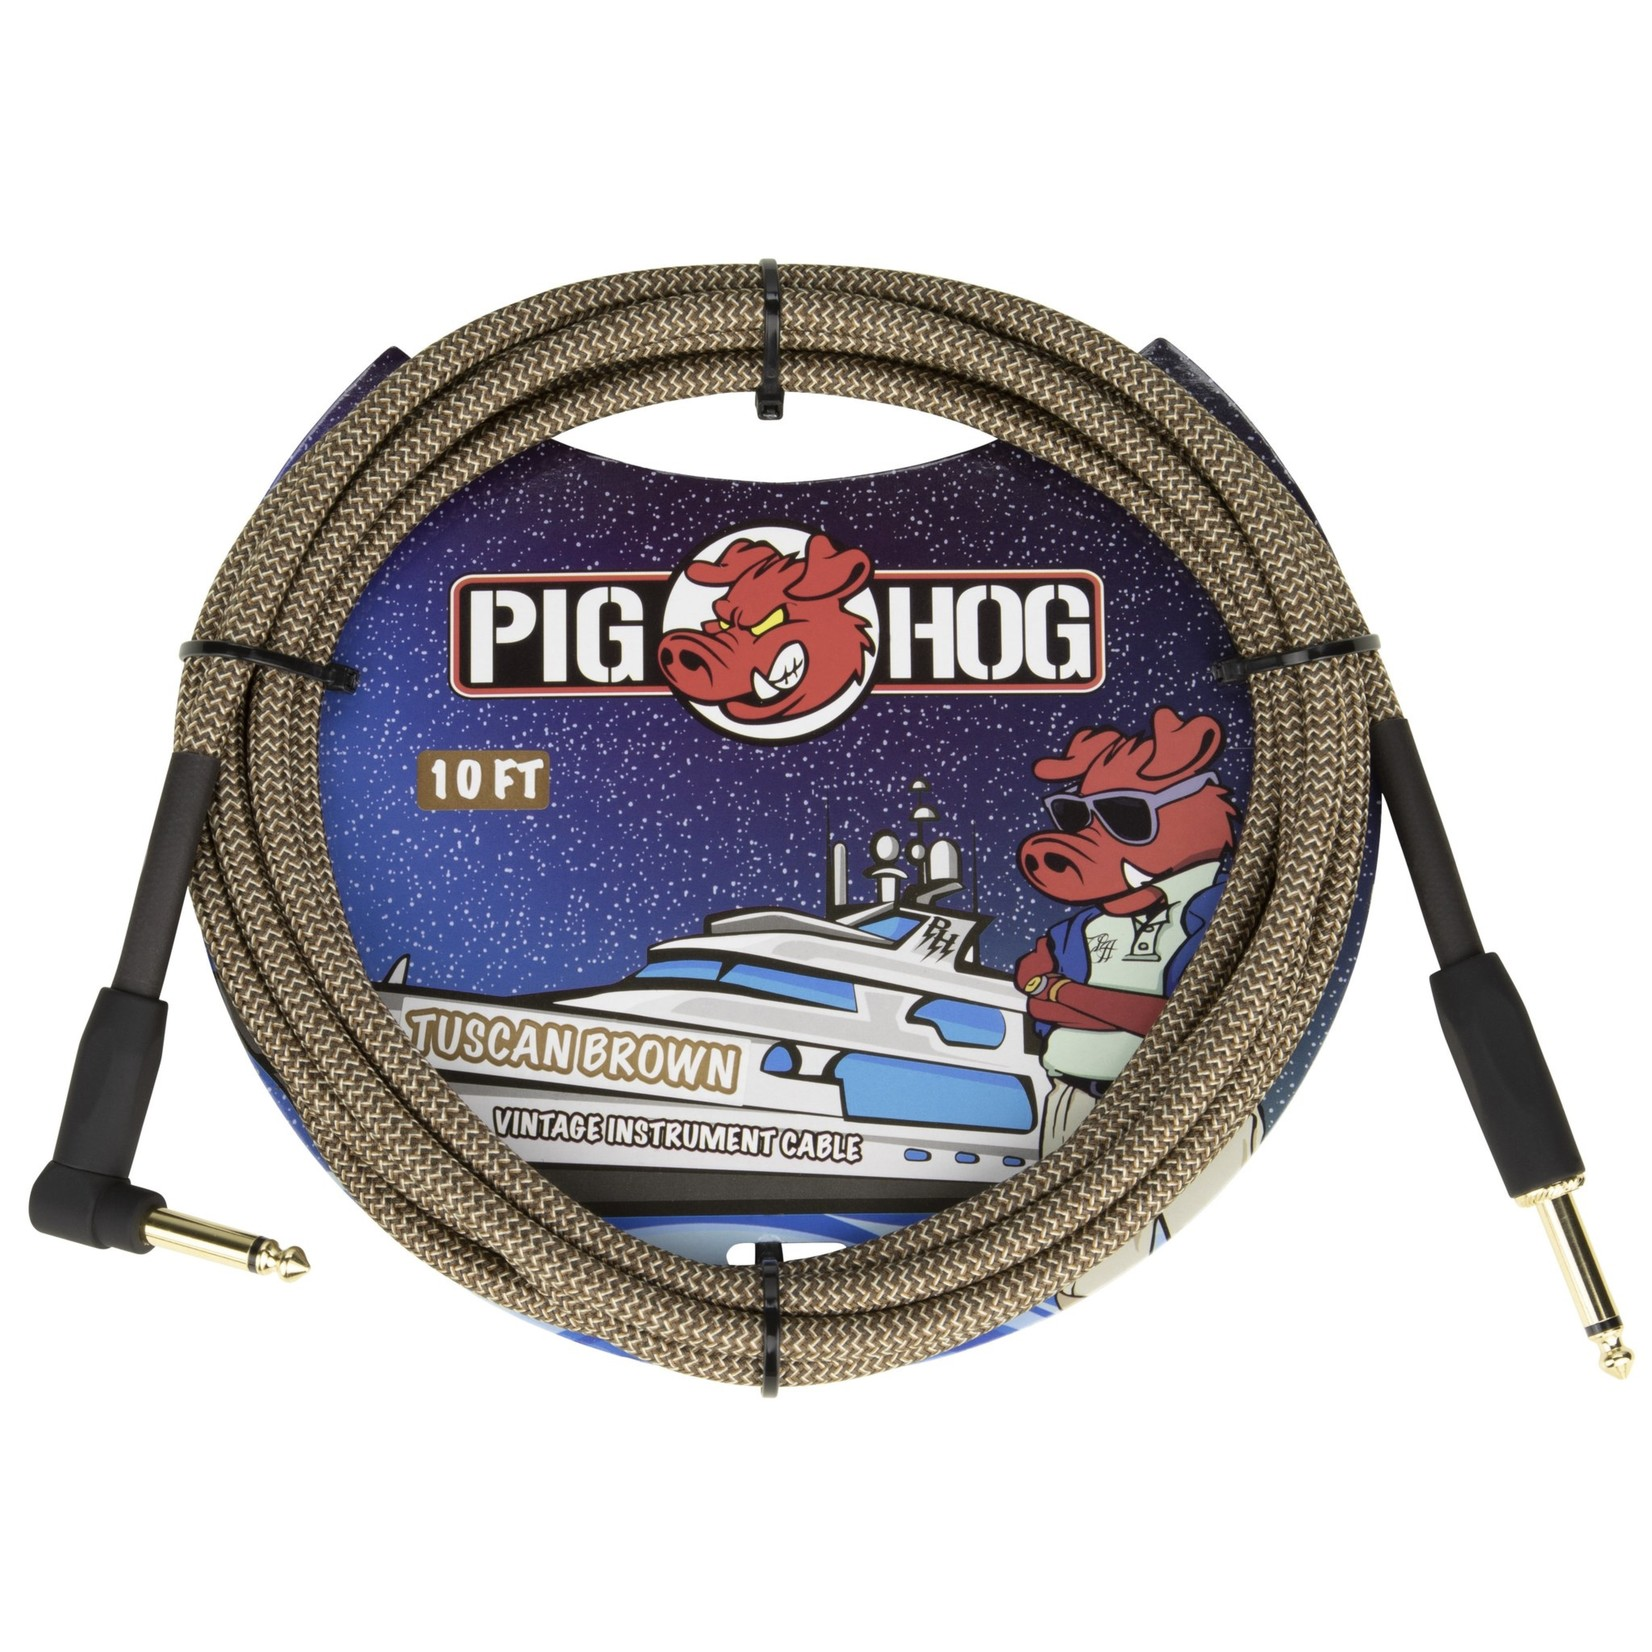 """Pig Hog Pig Hog 10-Foot Vintage Woven Instrument Cable, 1/4"""" Straight-Right Angle, Tuscan Brown - New 2020!"""